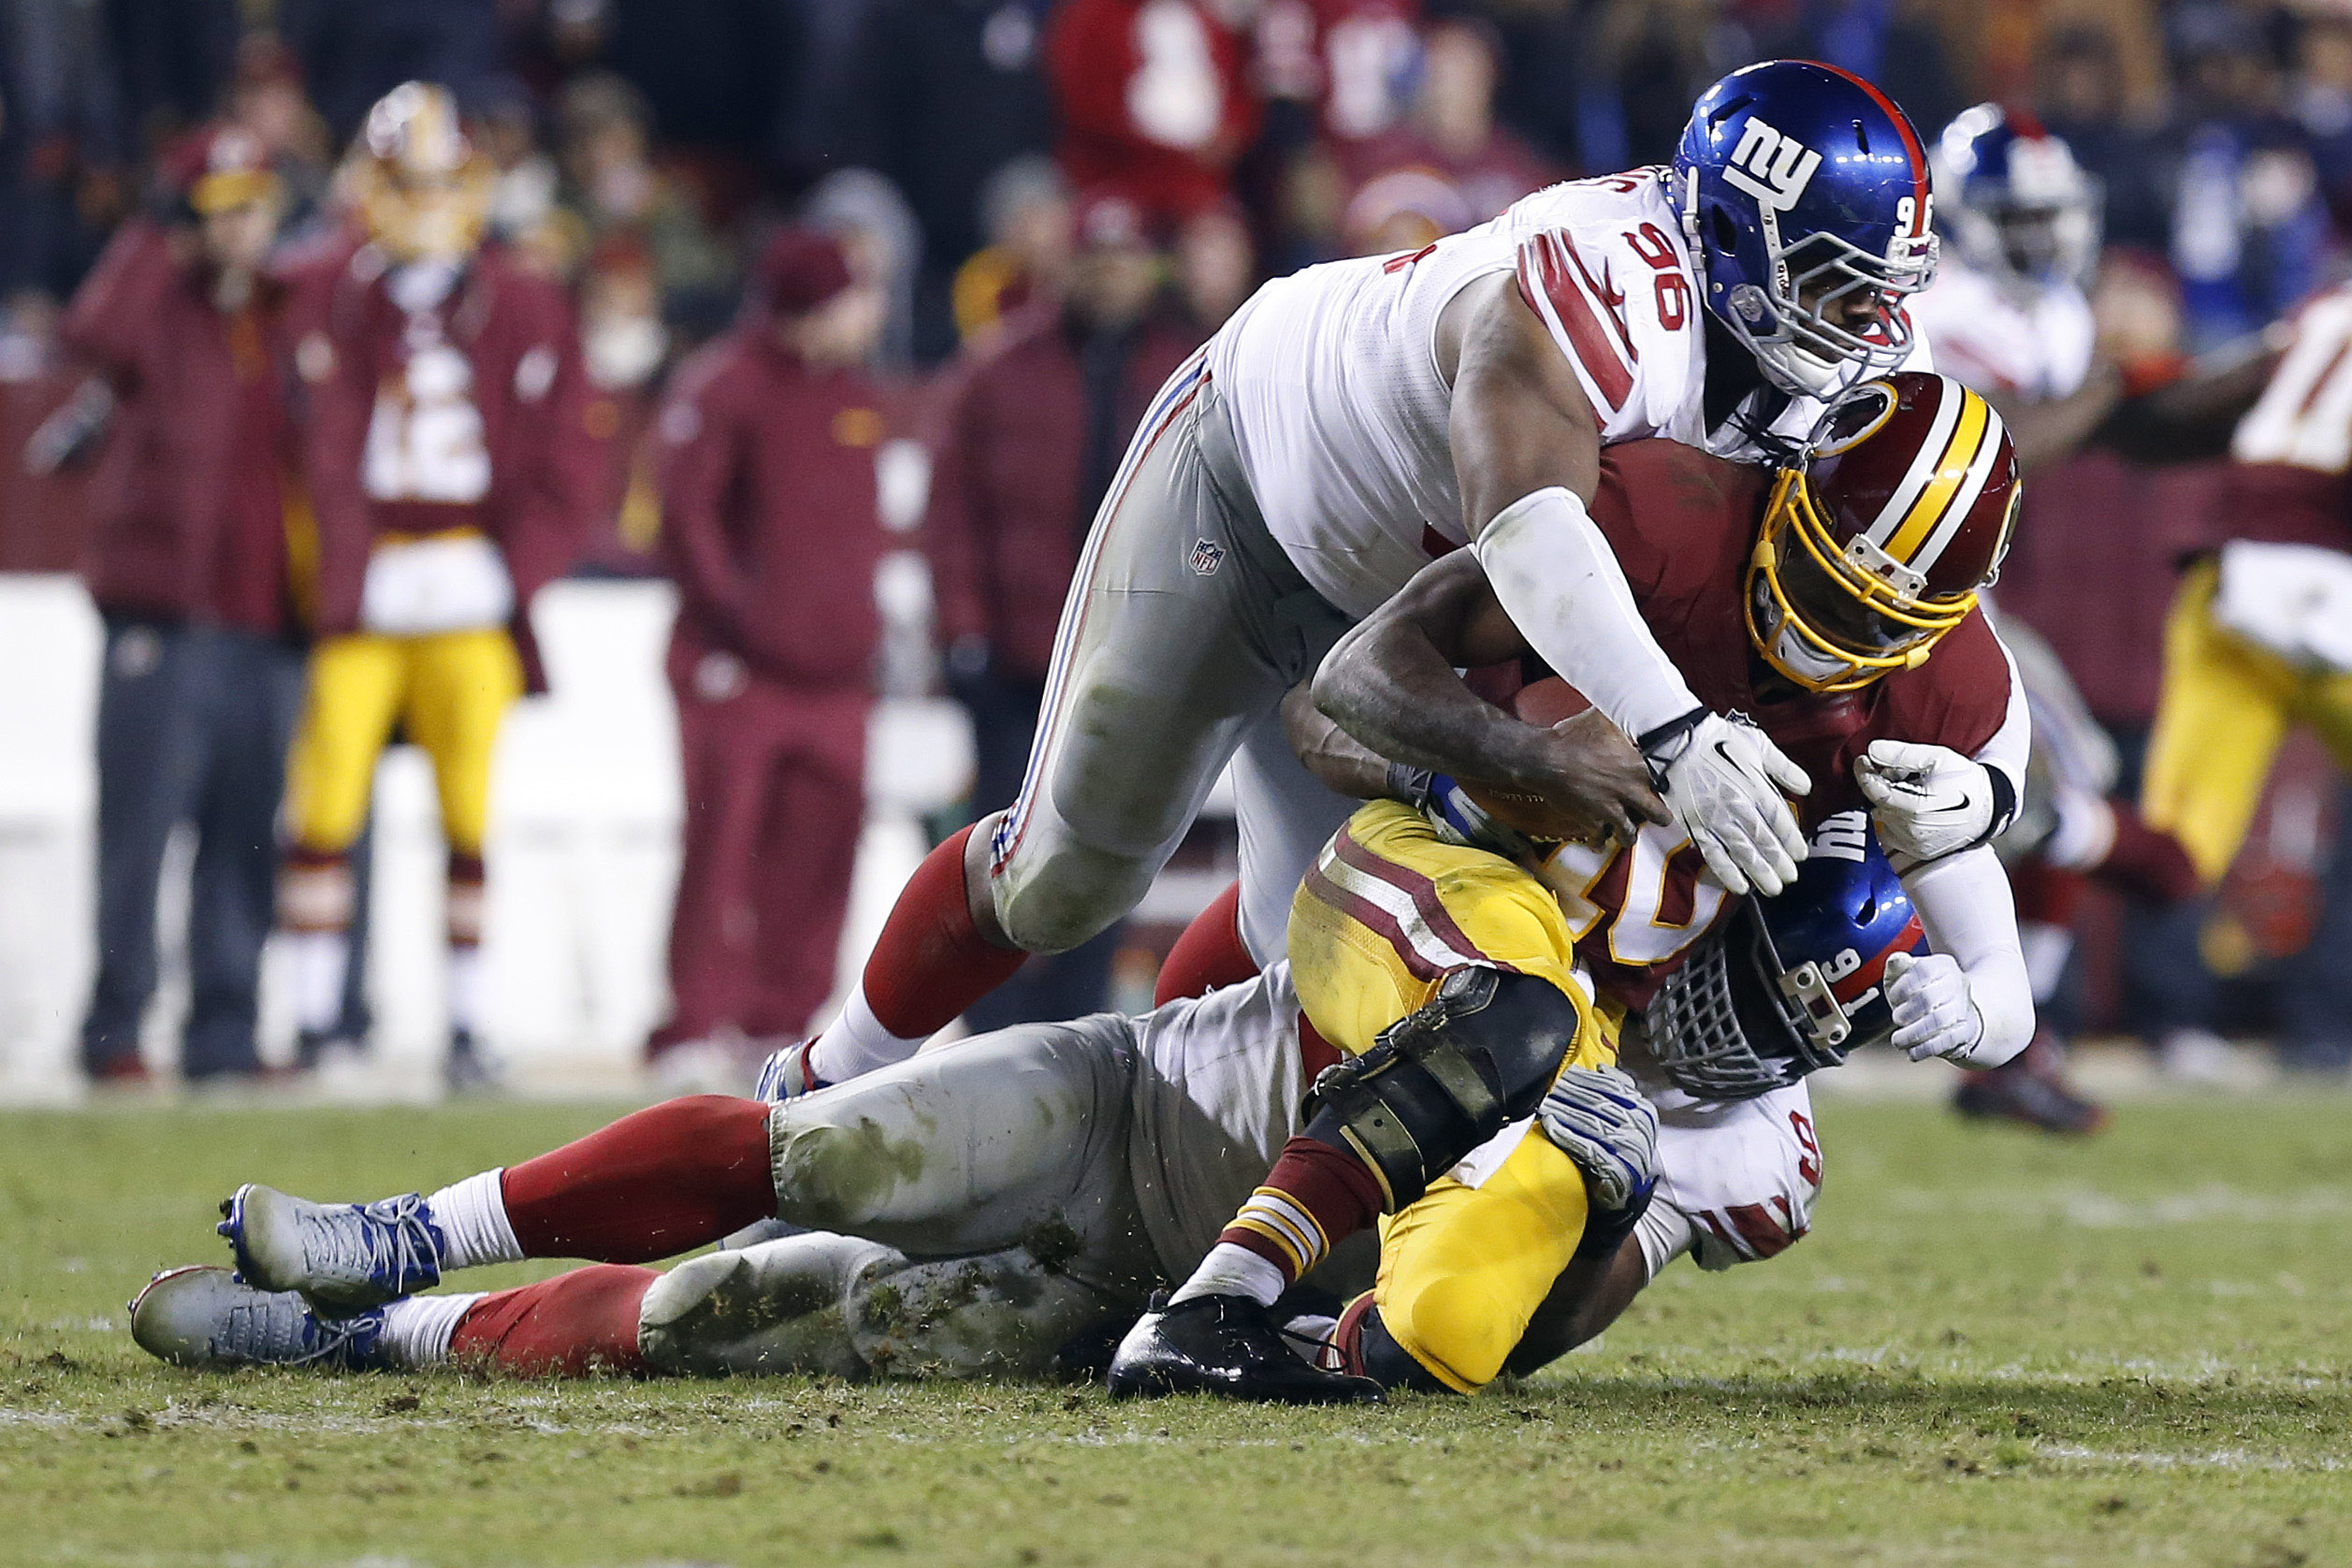 7594261-nfl-new-york-giants-at-washington-redskins